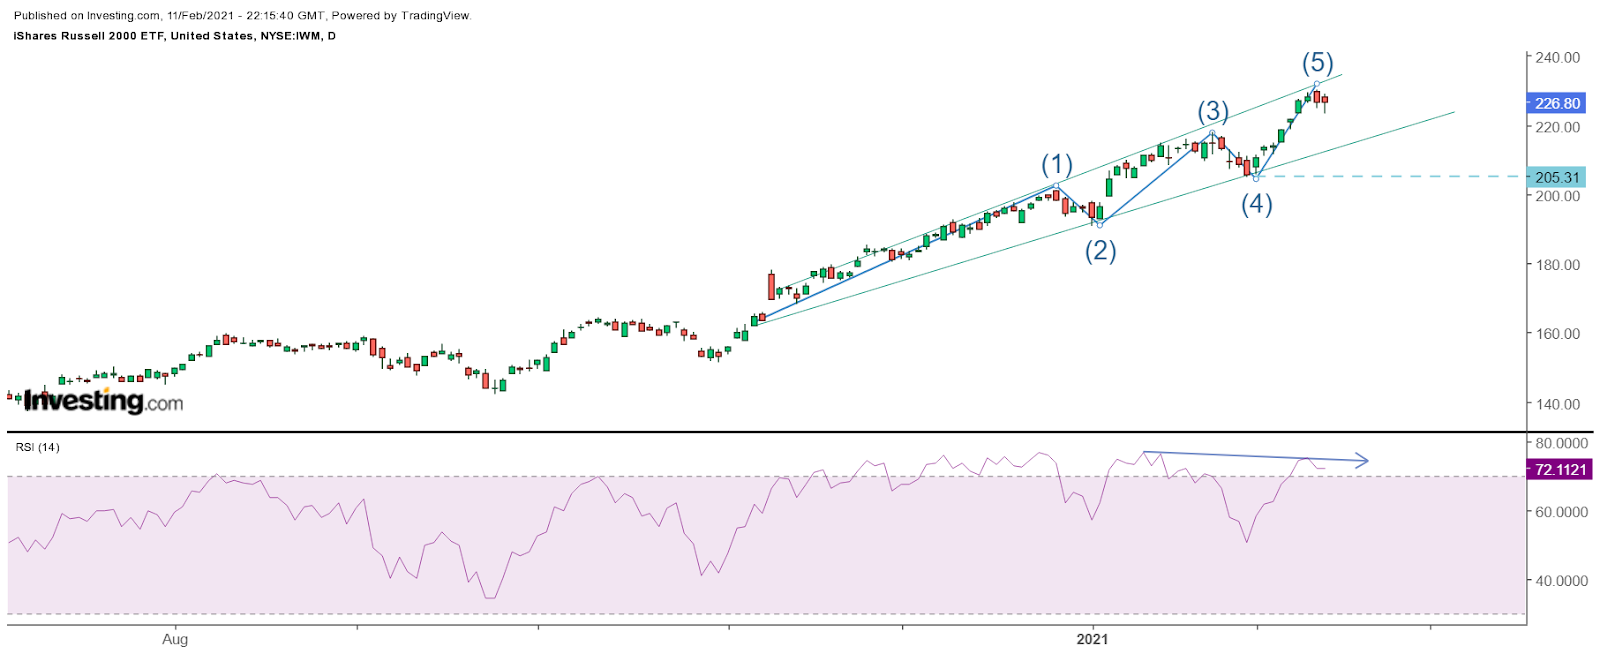 Russell 2000 Daily